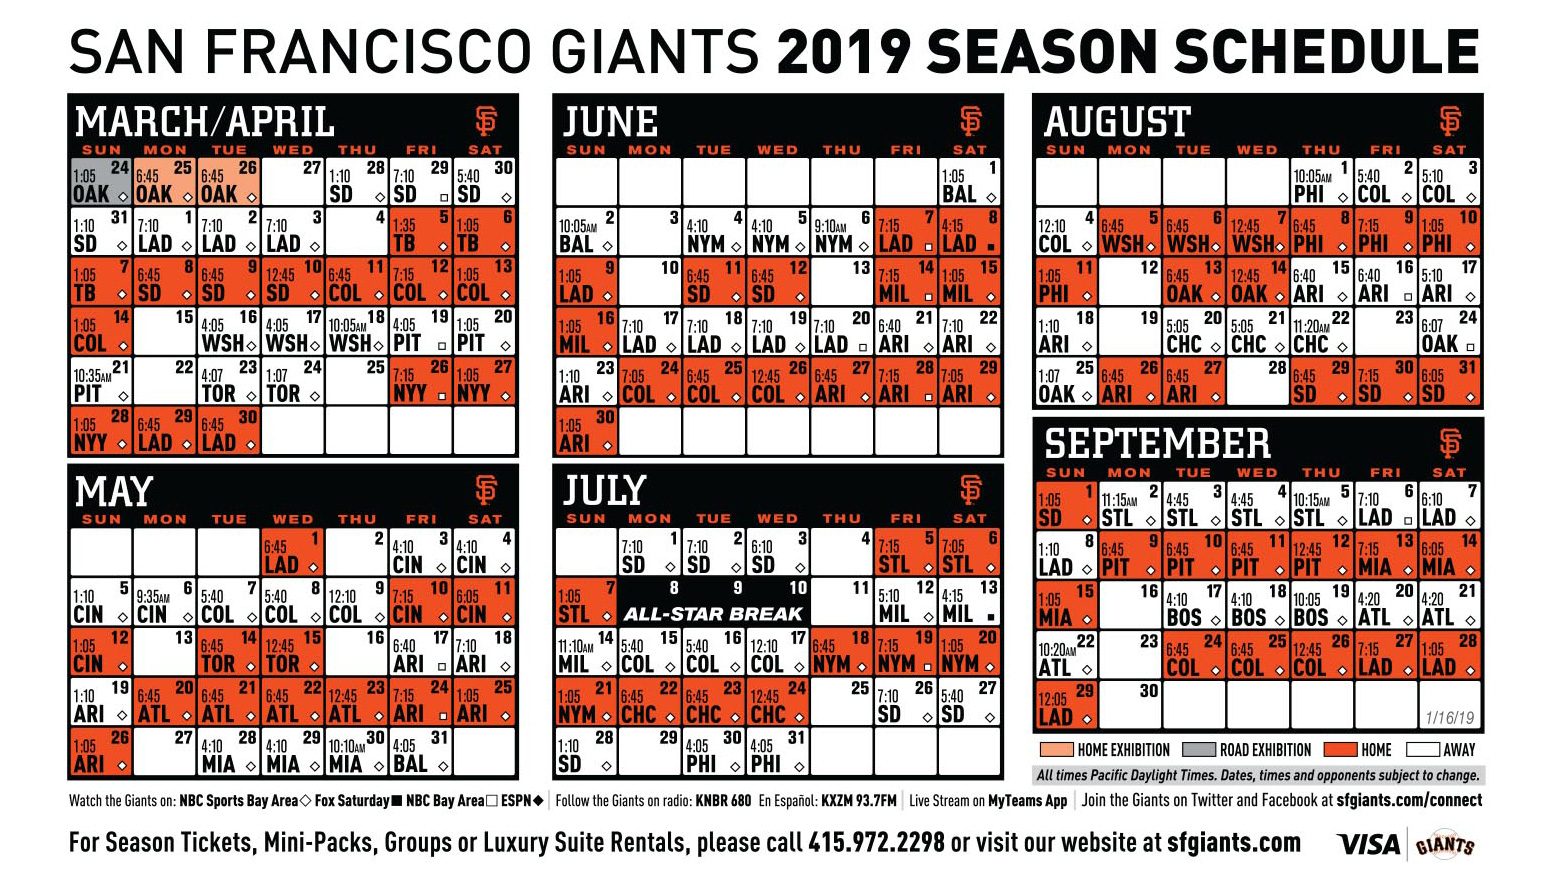 photo about Atlanta Braves Schedule Printable referred to as Giants 2019 Printable Program San Francisco Giants